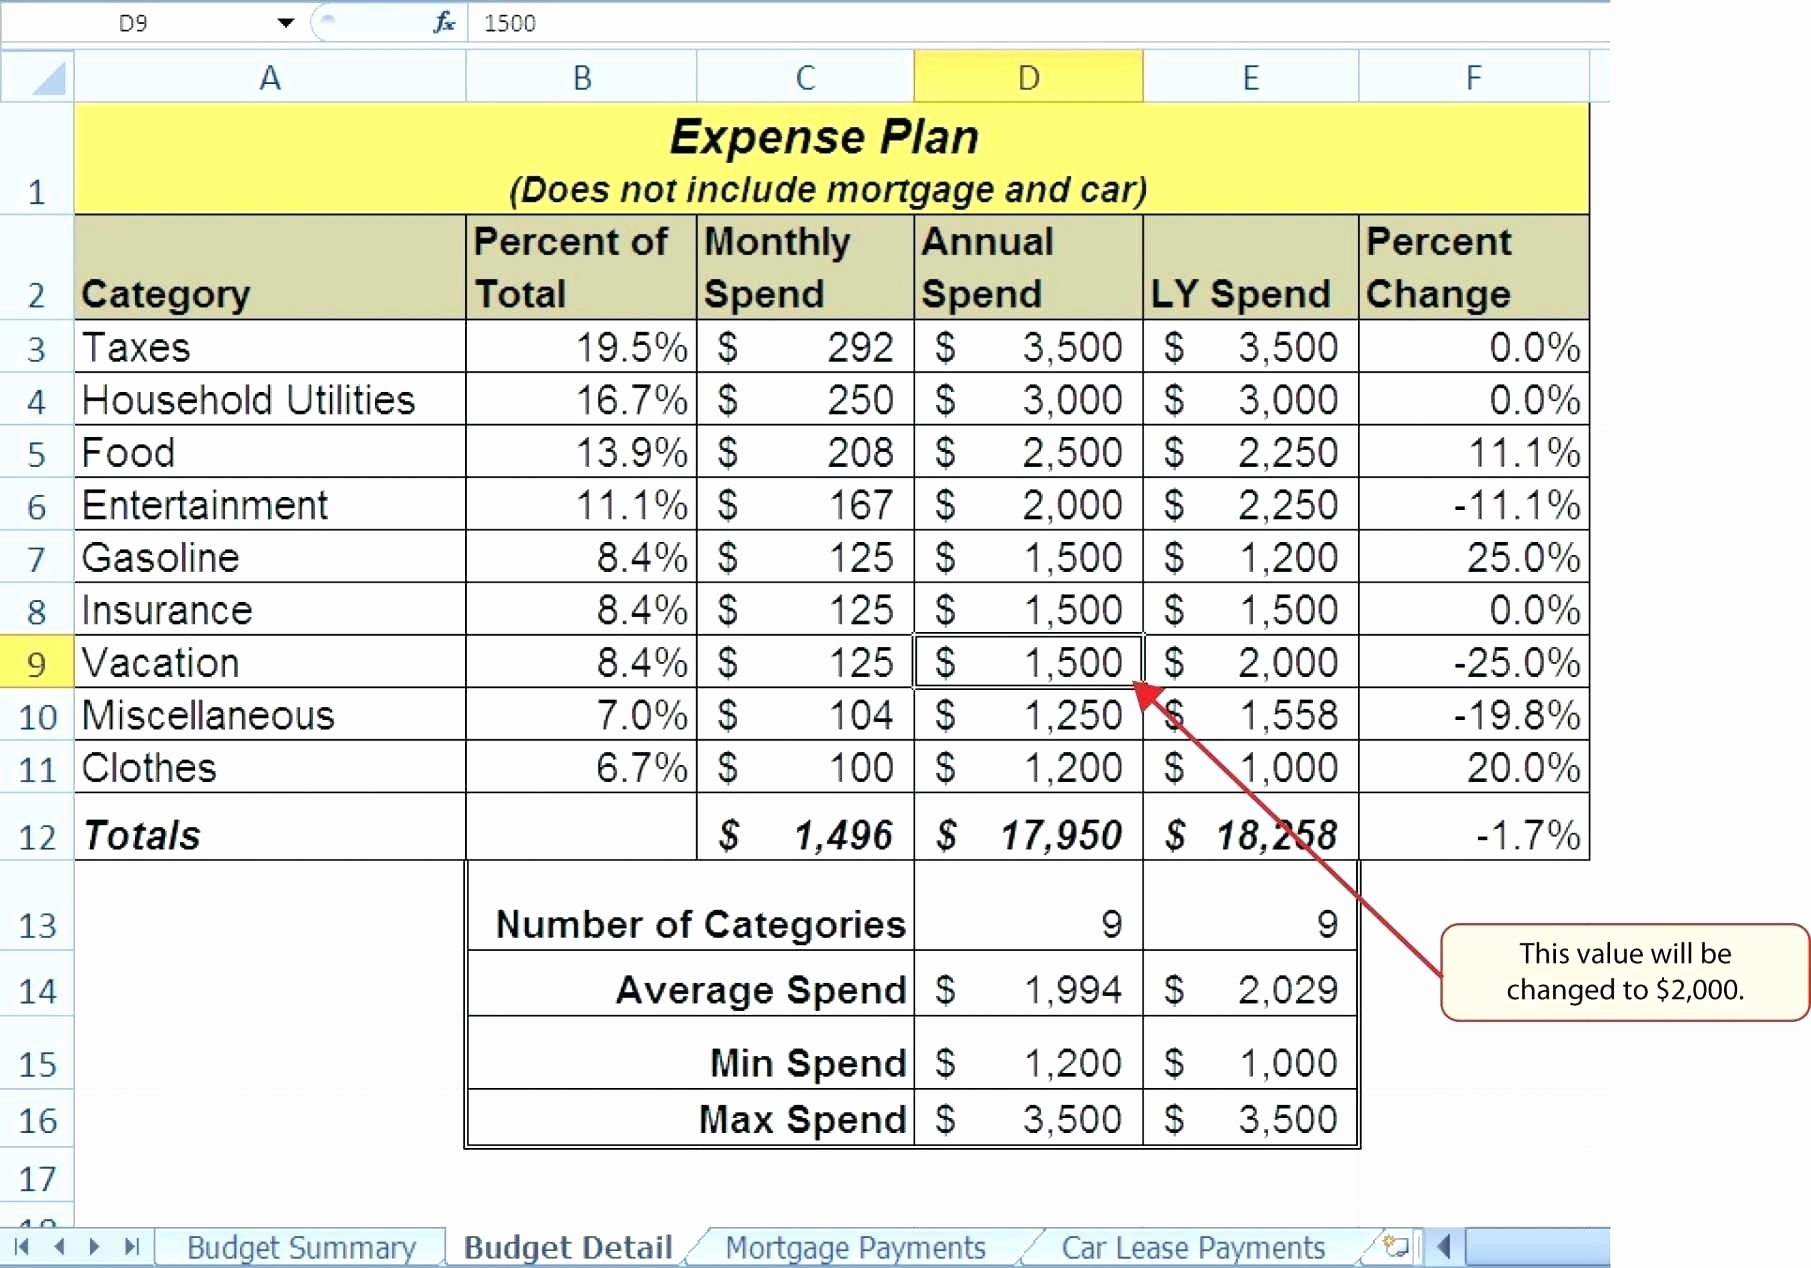 Mortgage Spreadsheet Google Docs With Regard To Mortgage Spreadsheet Google Docs  Aljererlotgd